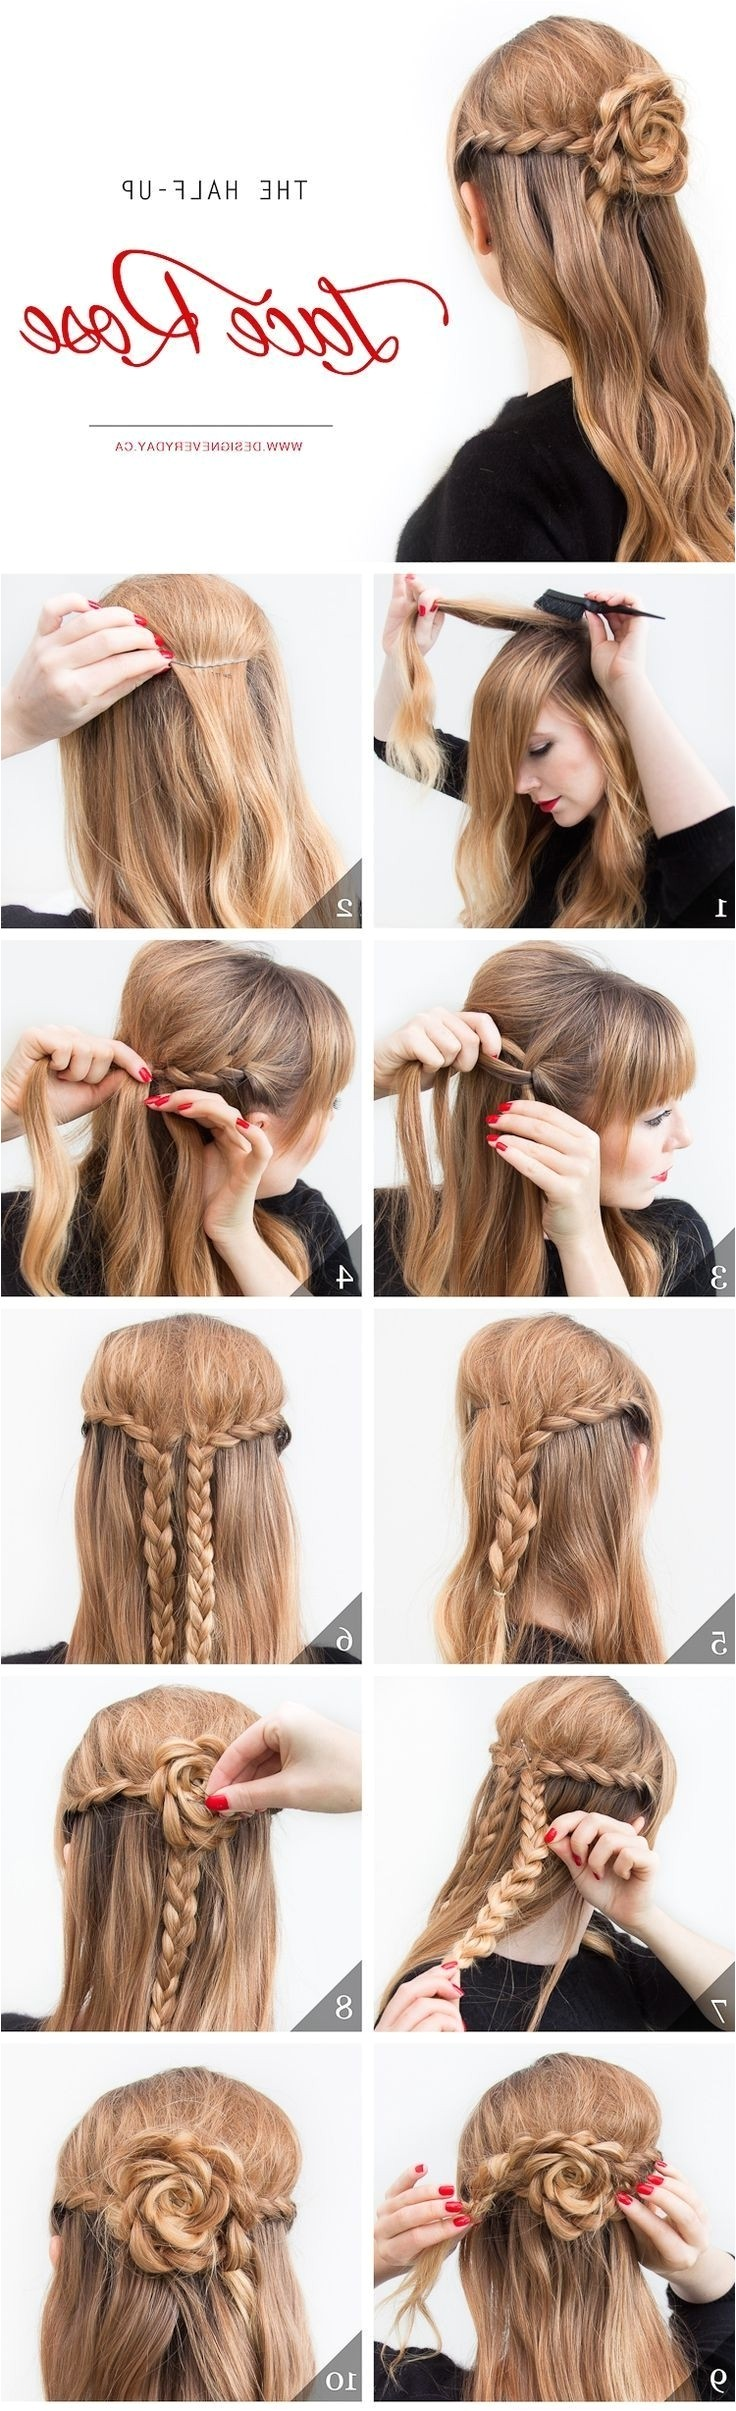 hairstyles for church easy